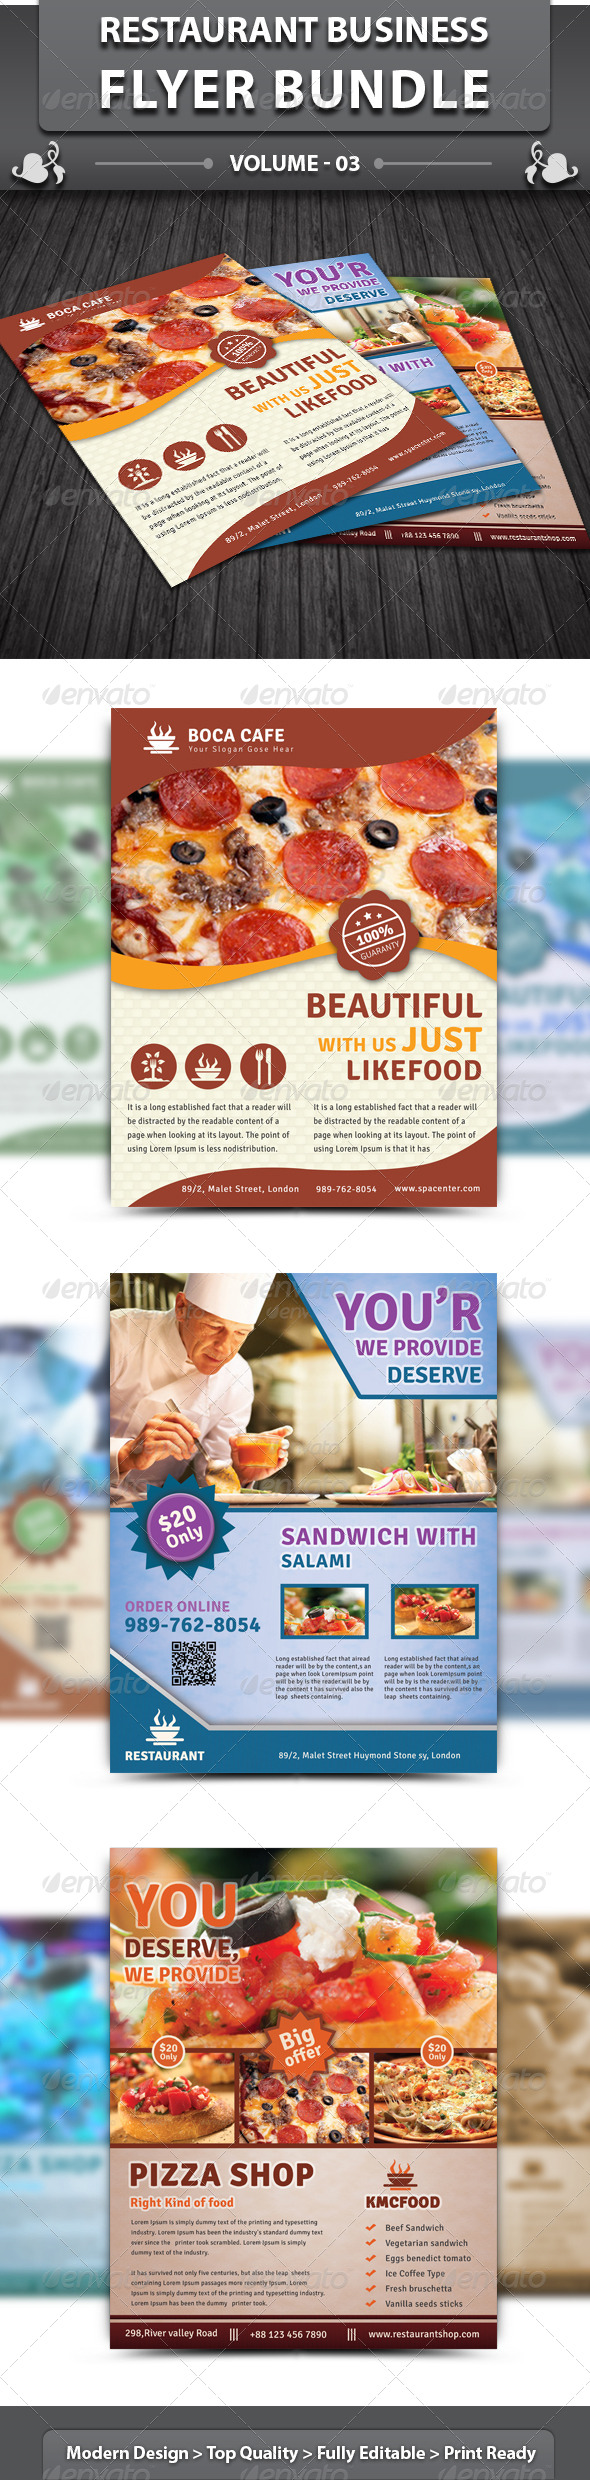 Restaurant Business Flyer | Bundle 3